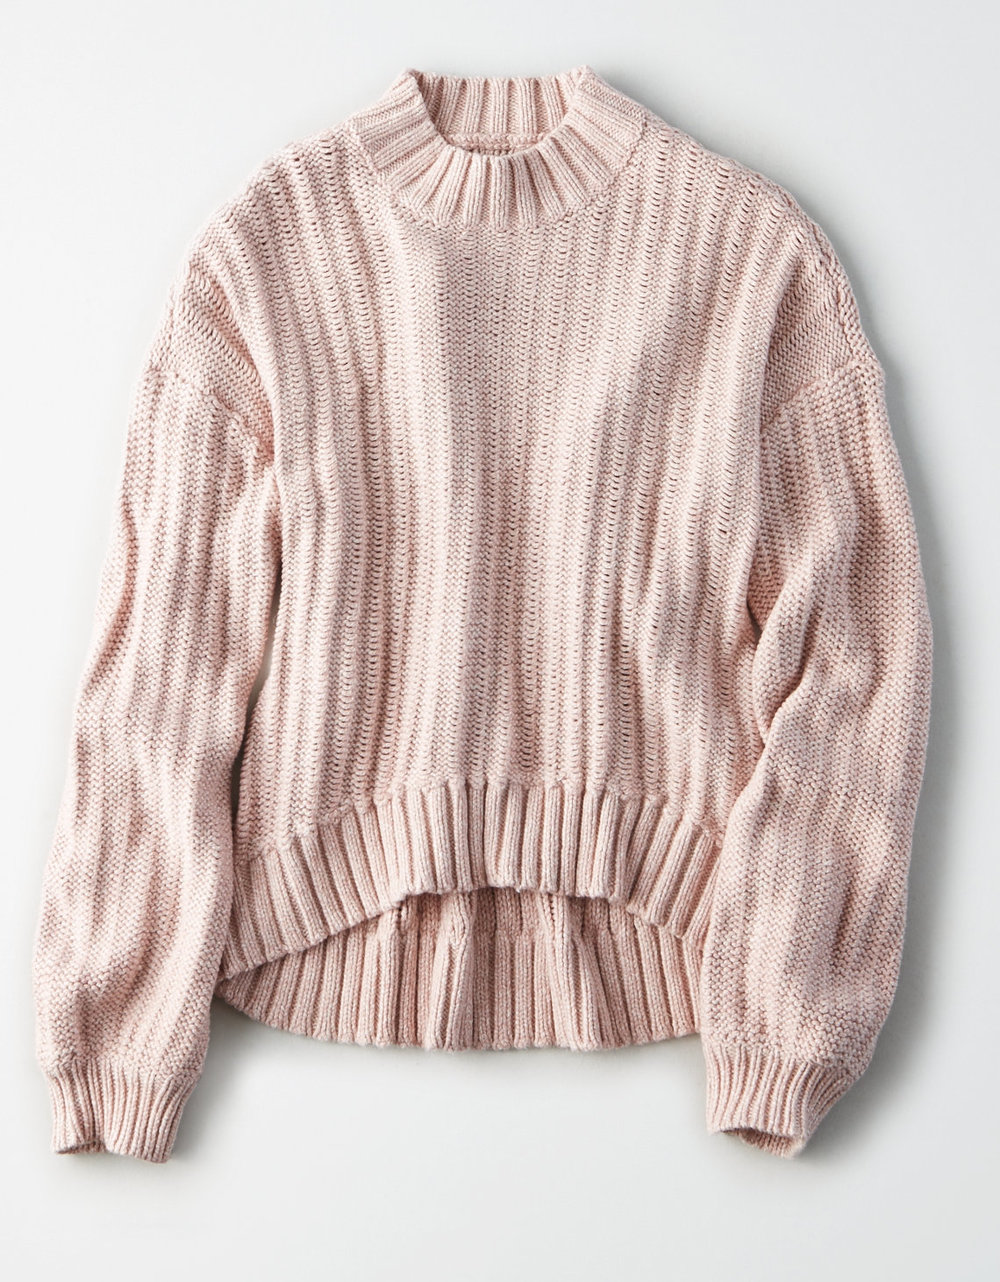 Mock Neck Sweater | $30.01